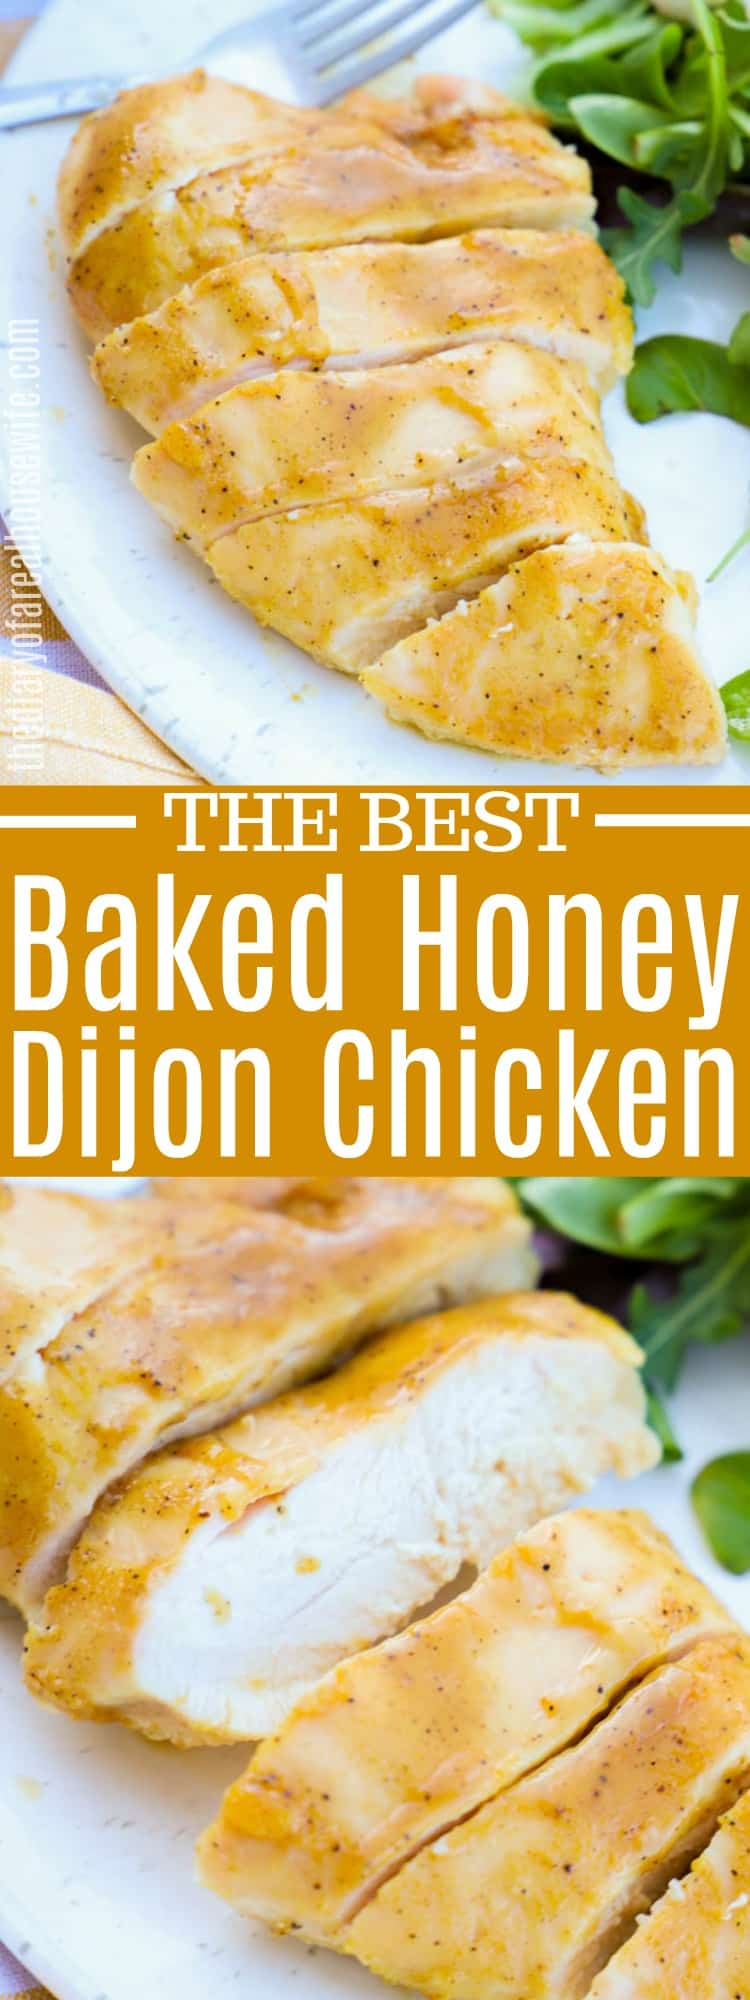 Baked Honey Dijon Chicken